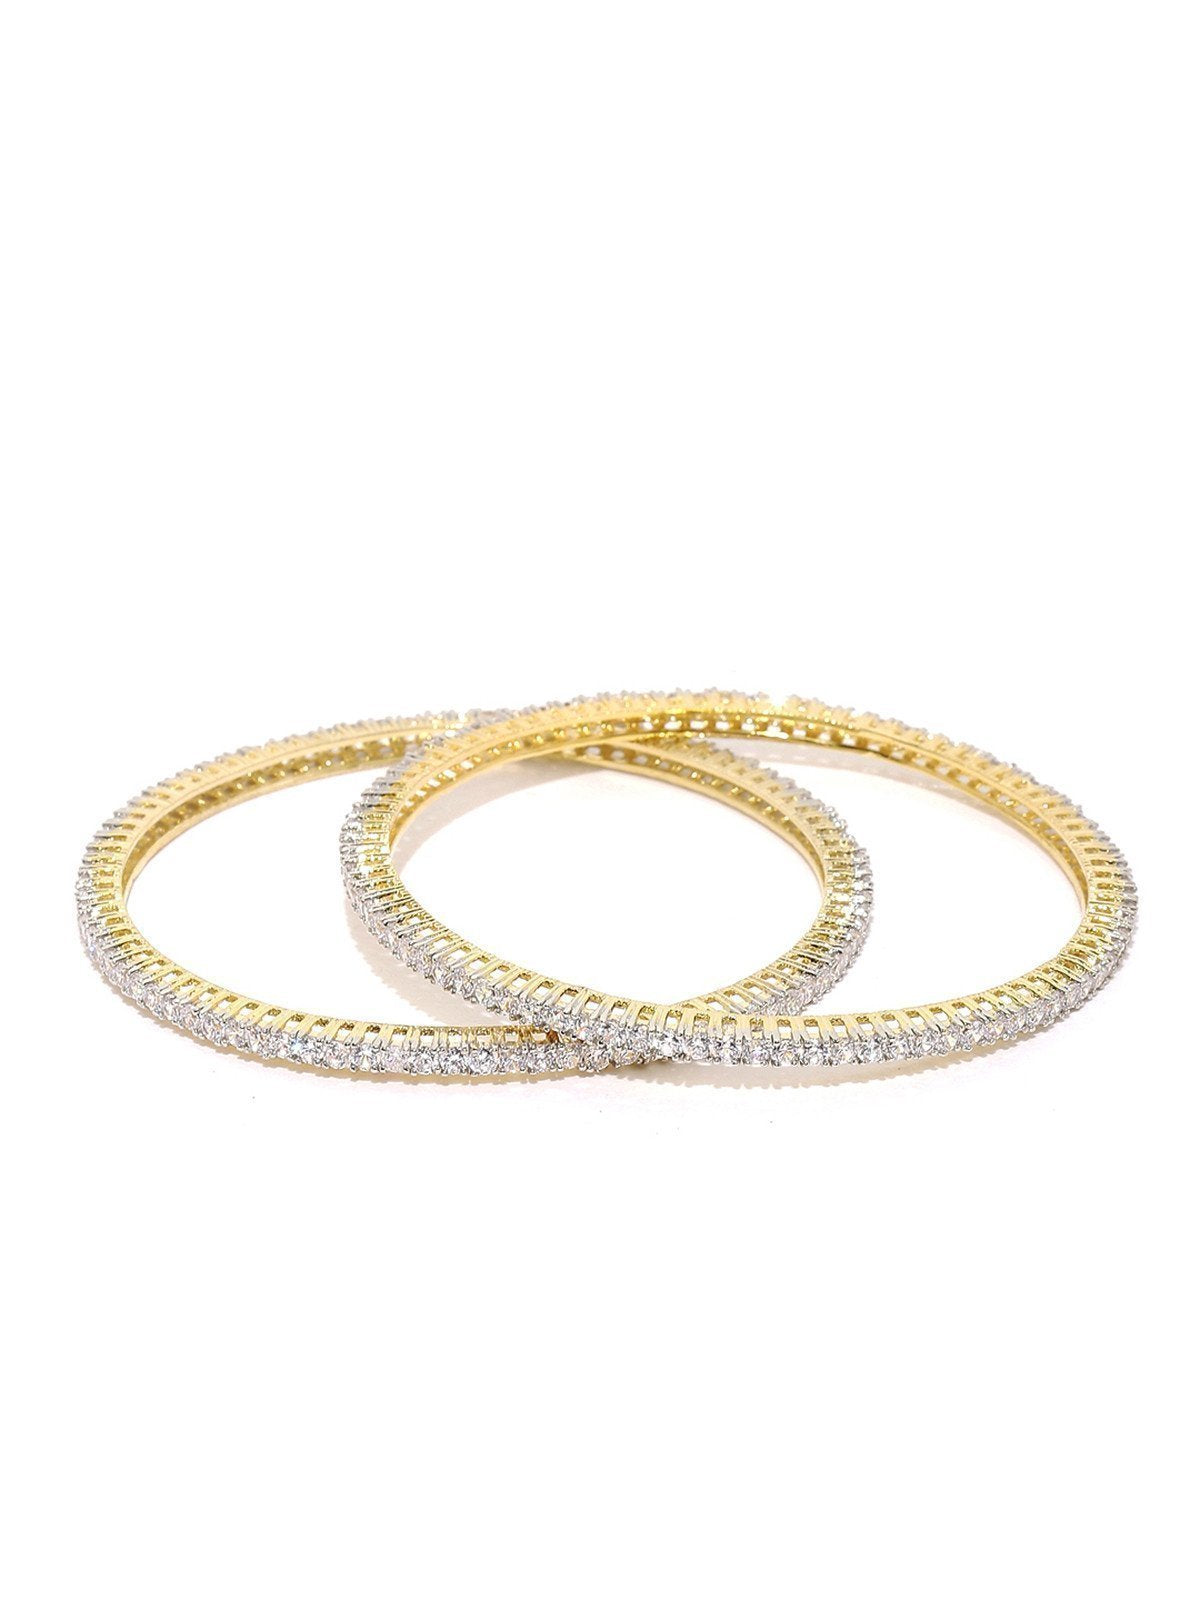 Set Of 2 Delicate Cubic Zirconia Bangles